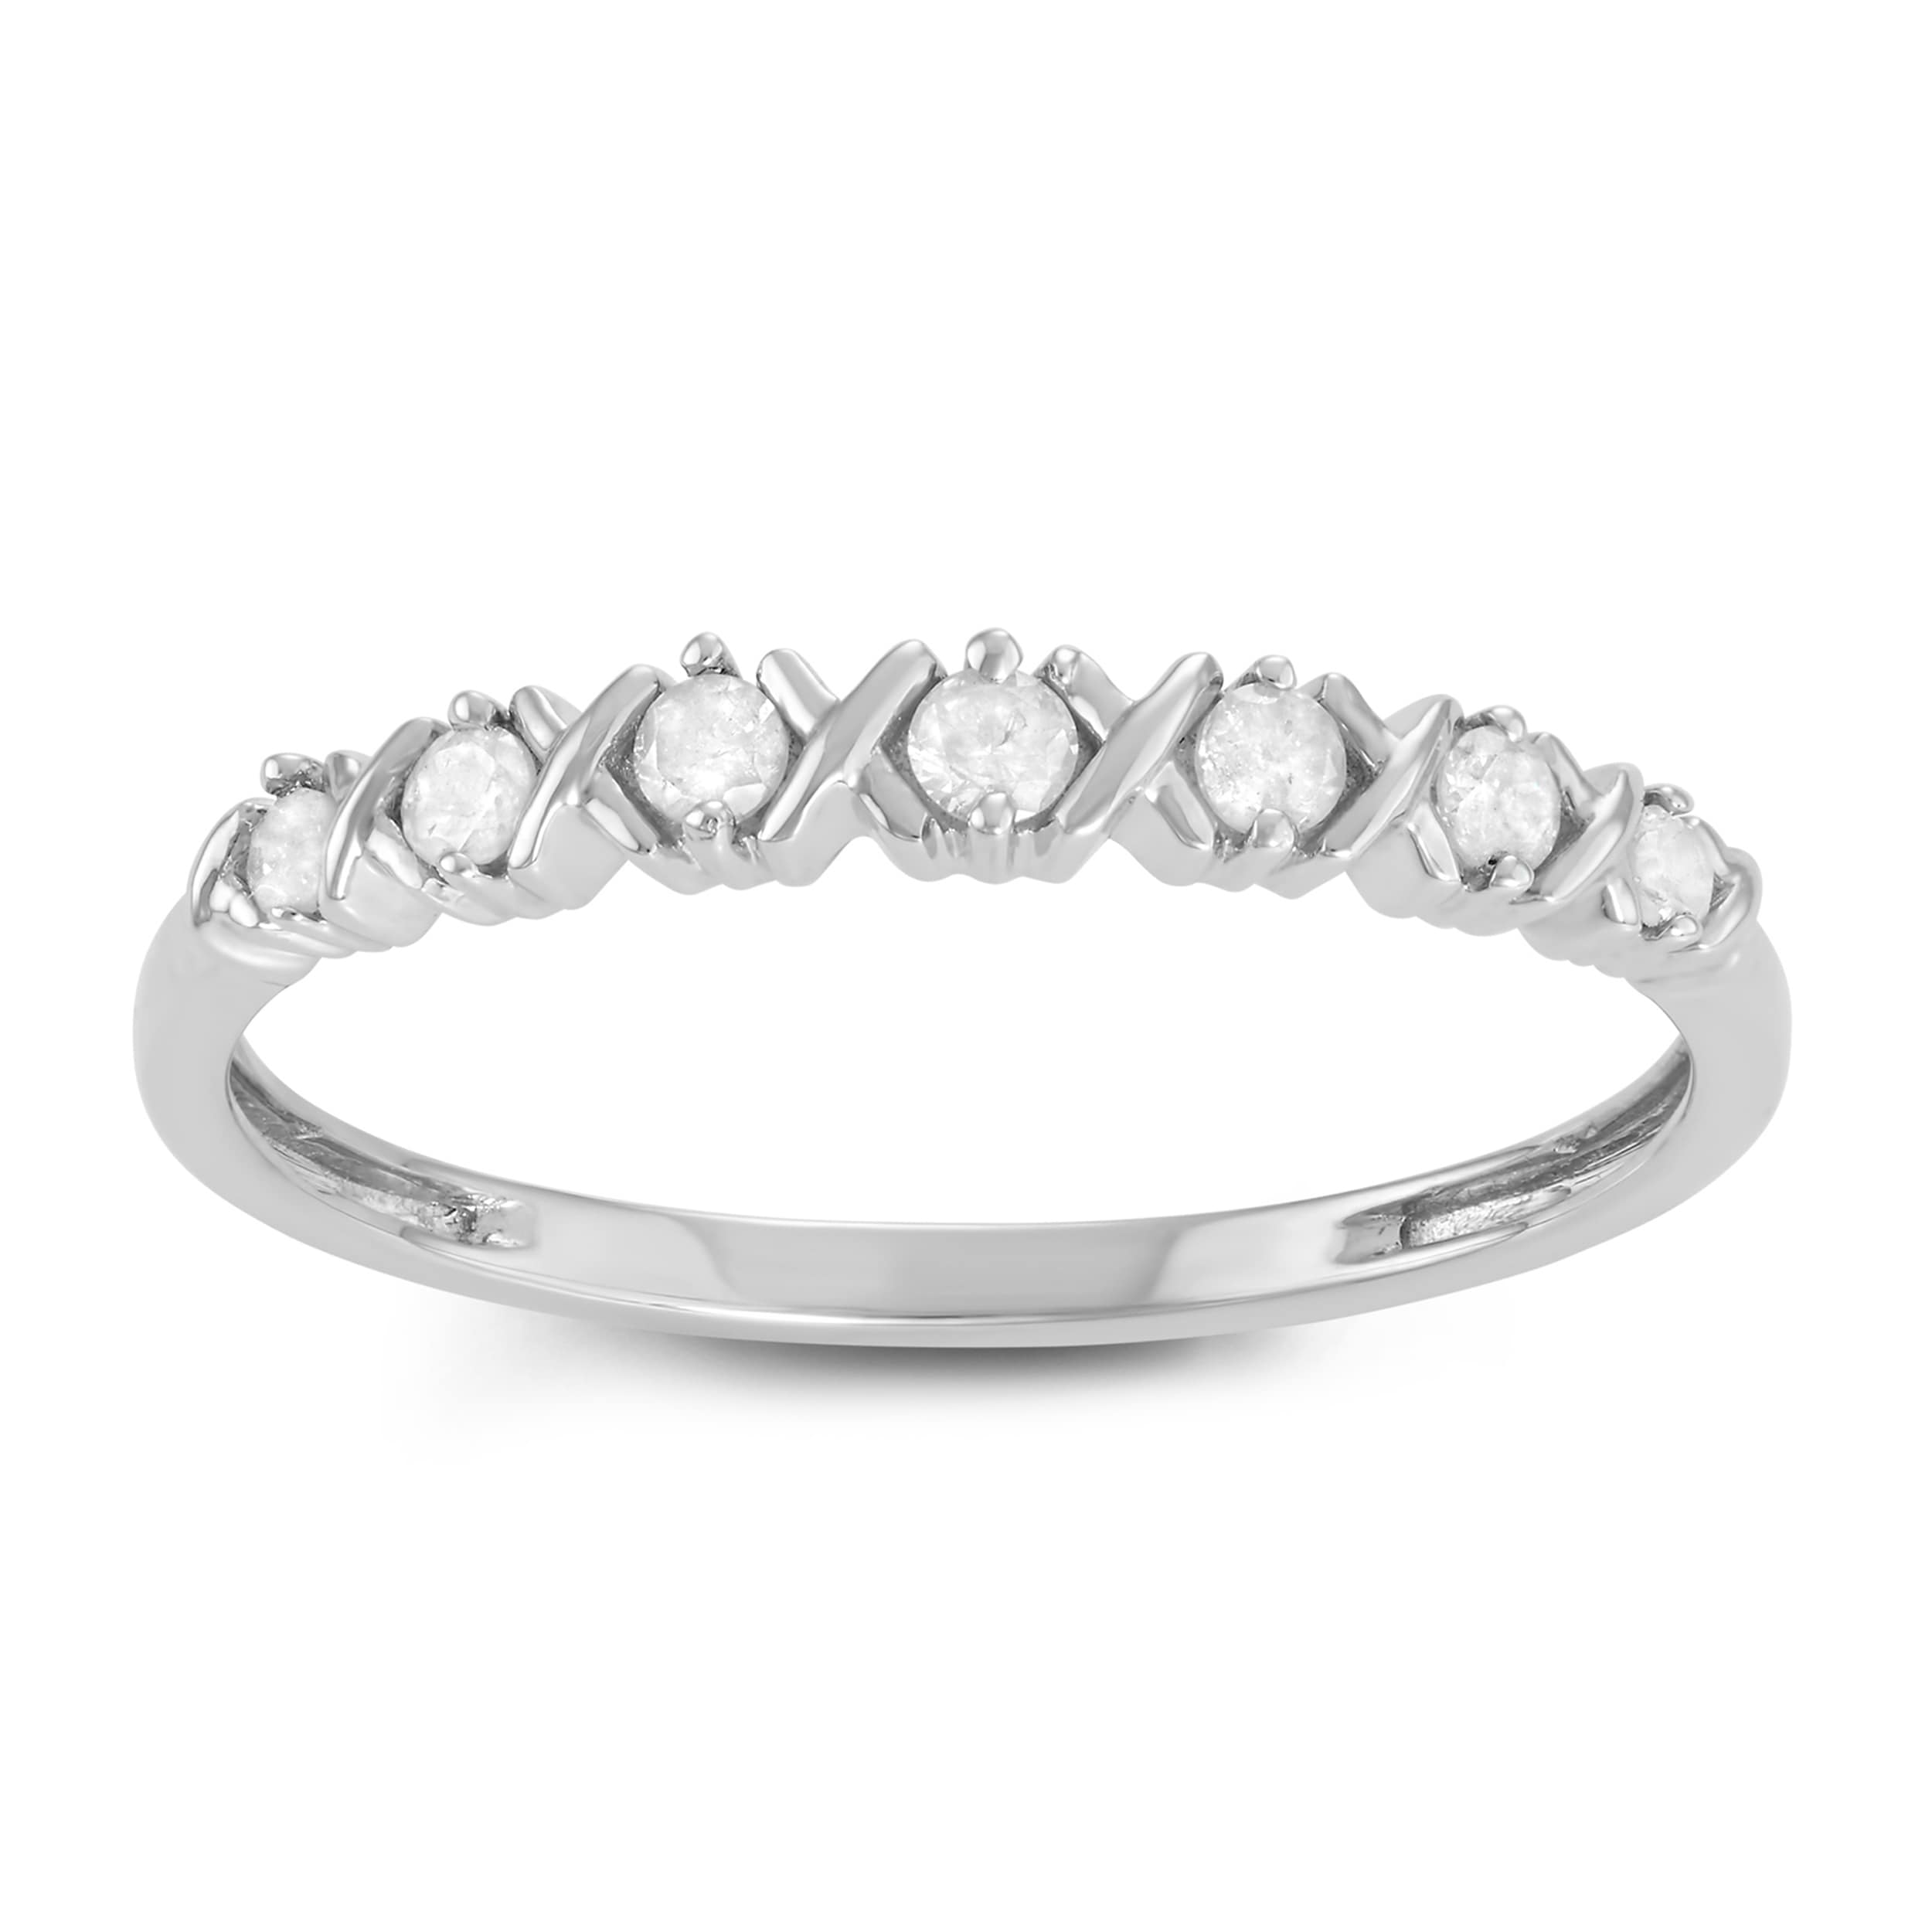 Journee collection Sterling Silver 1/6 CT TDW Diamond Rou...